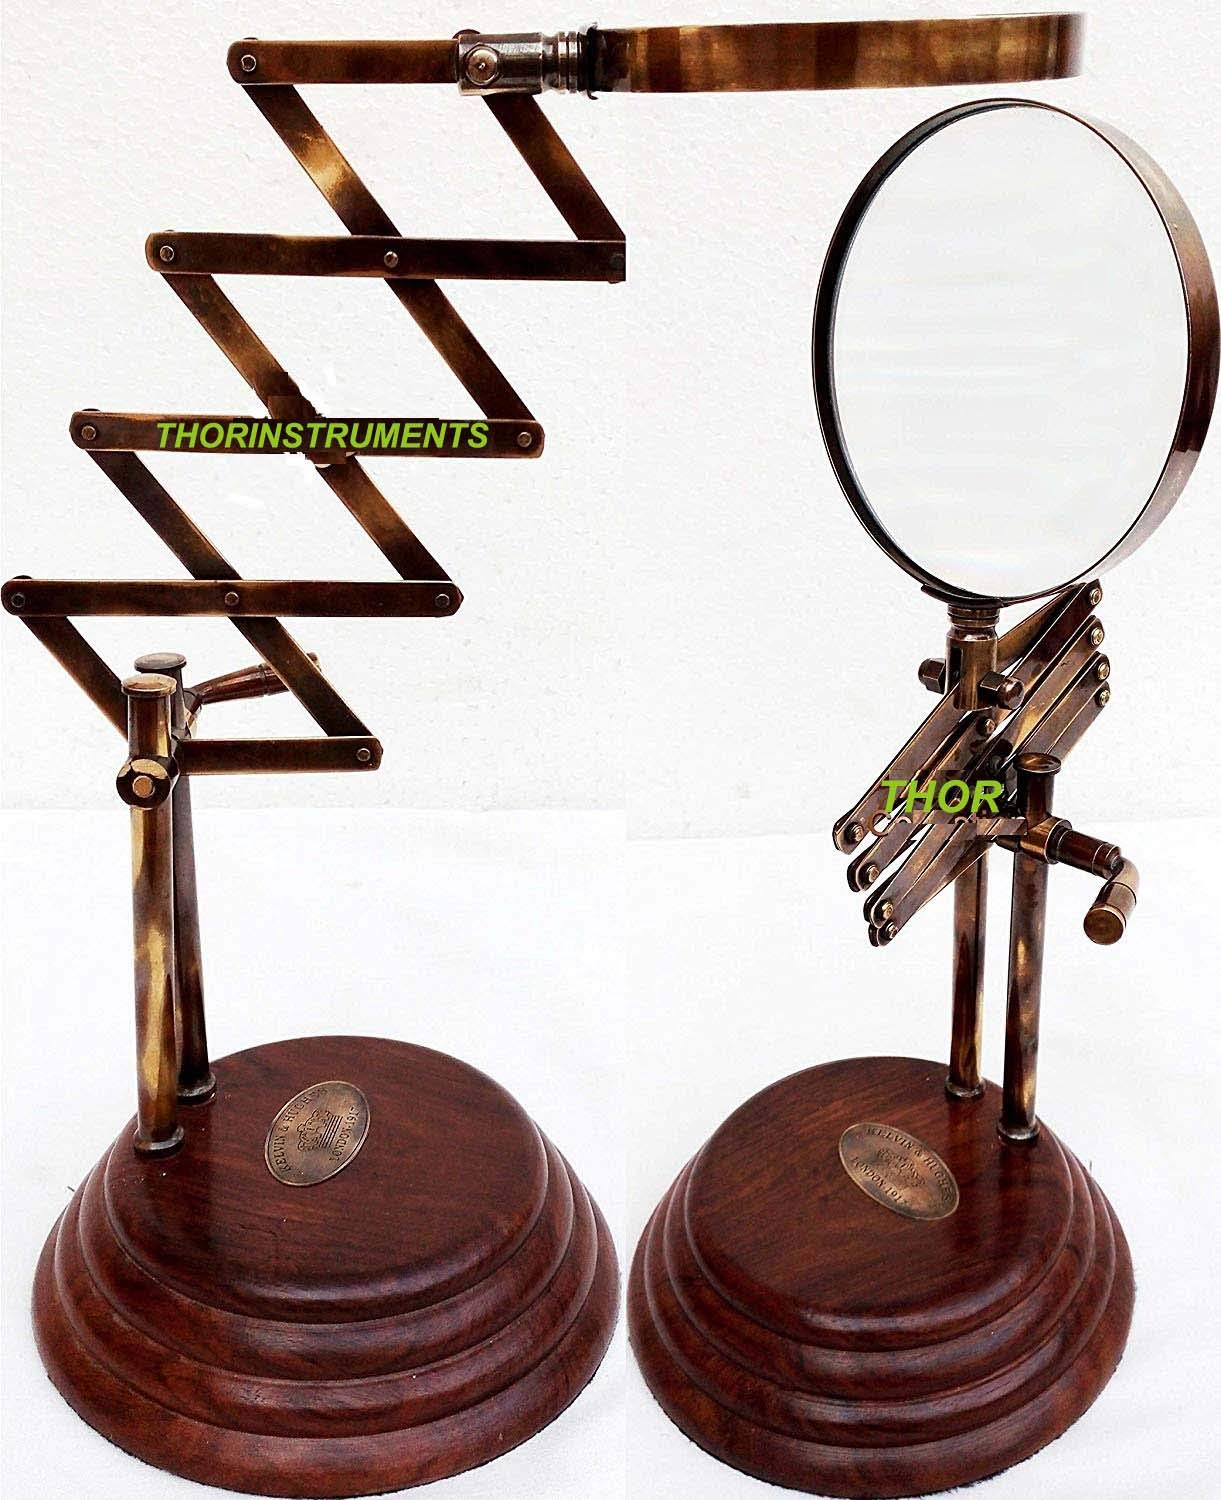 Vintage Style Desk Top Channer Magnifier Nautical Brass Magnifying Glass on Wooden Stand